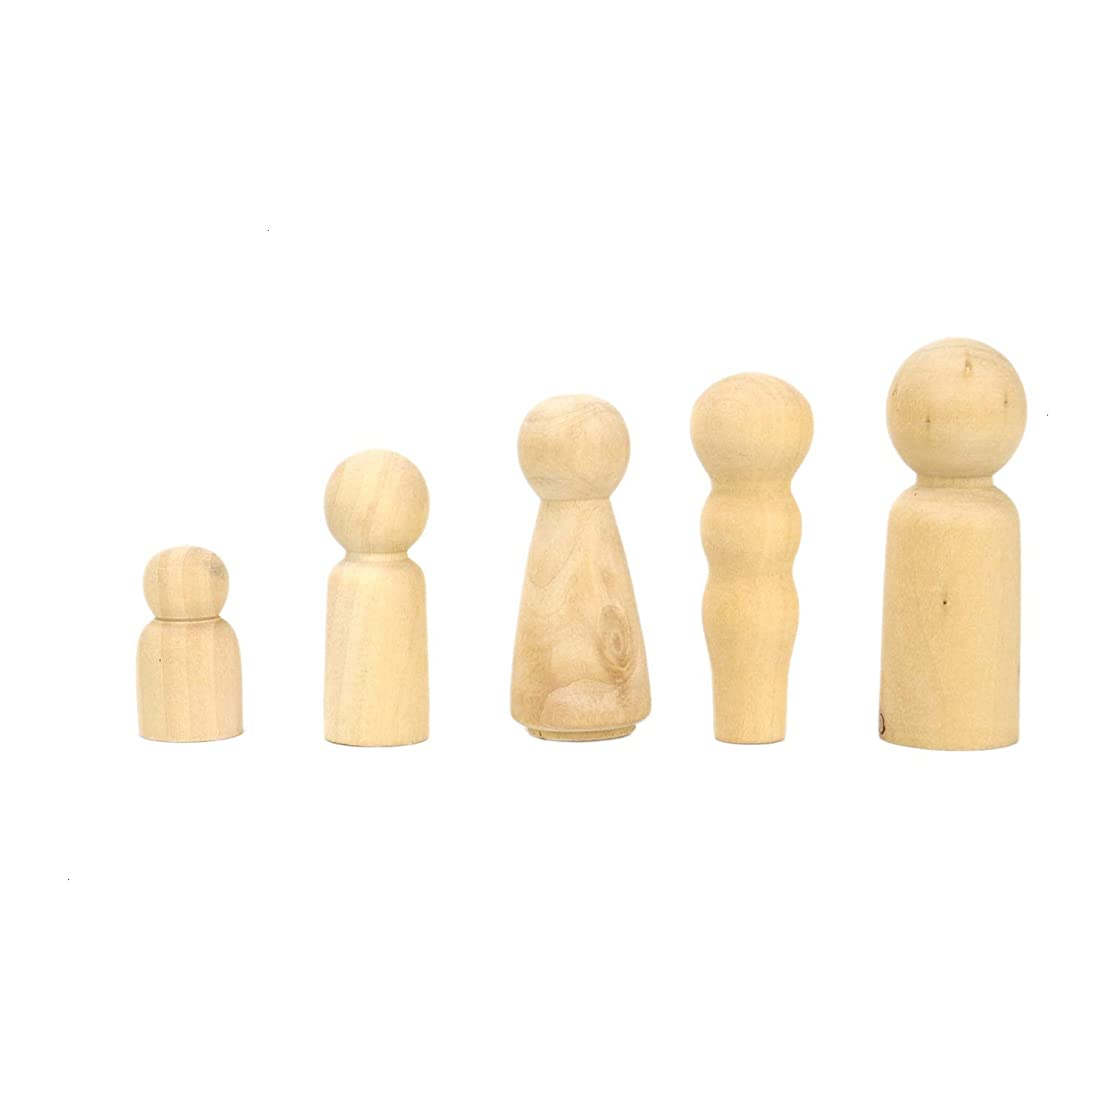 HUELE 10 Pcs Wooden Peg Doll Bodies Family Peg Doll Kit for Art Craft DIY Project